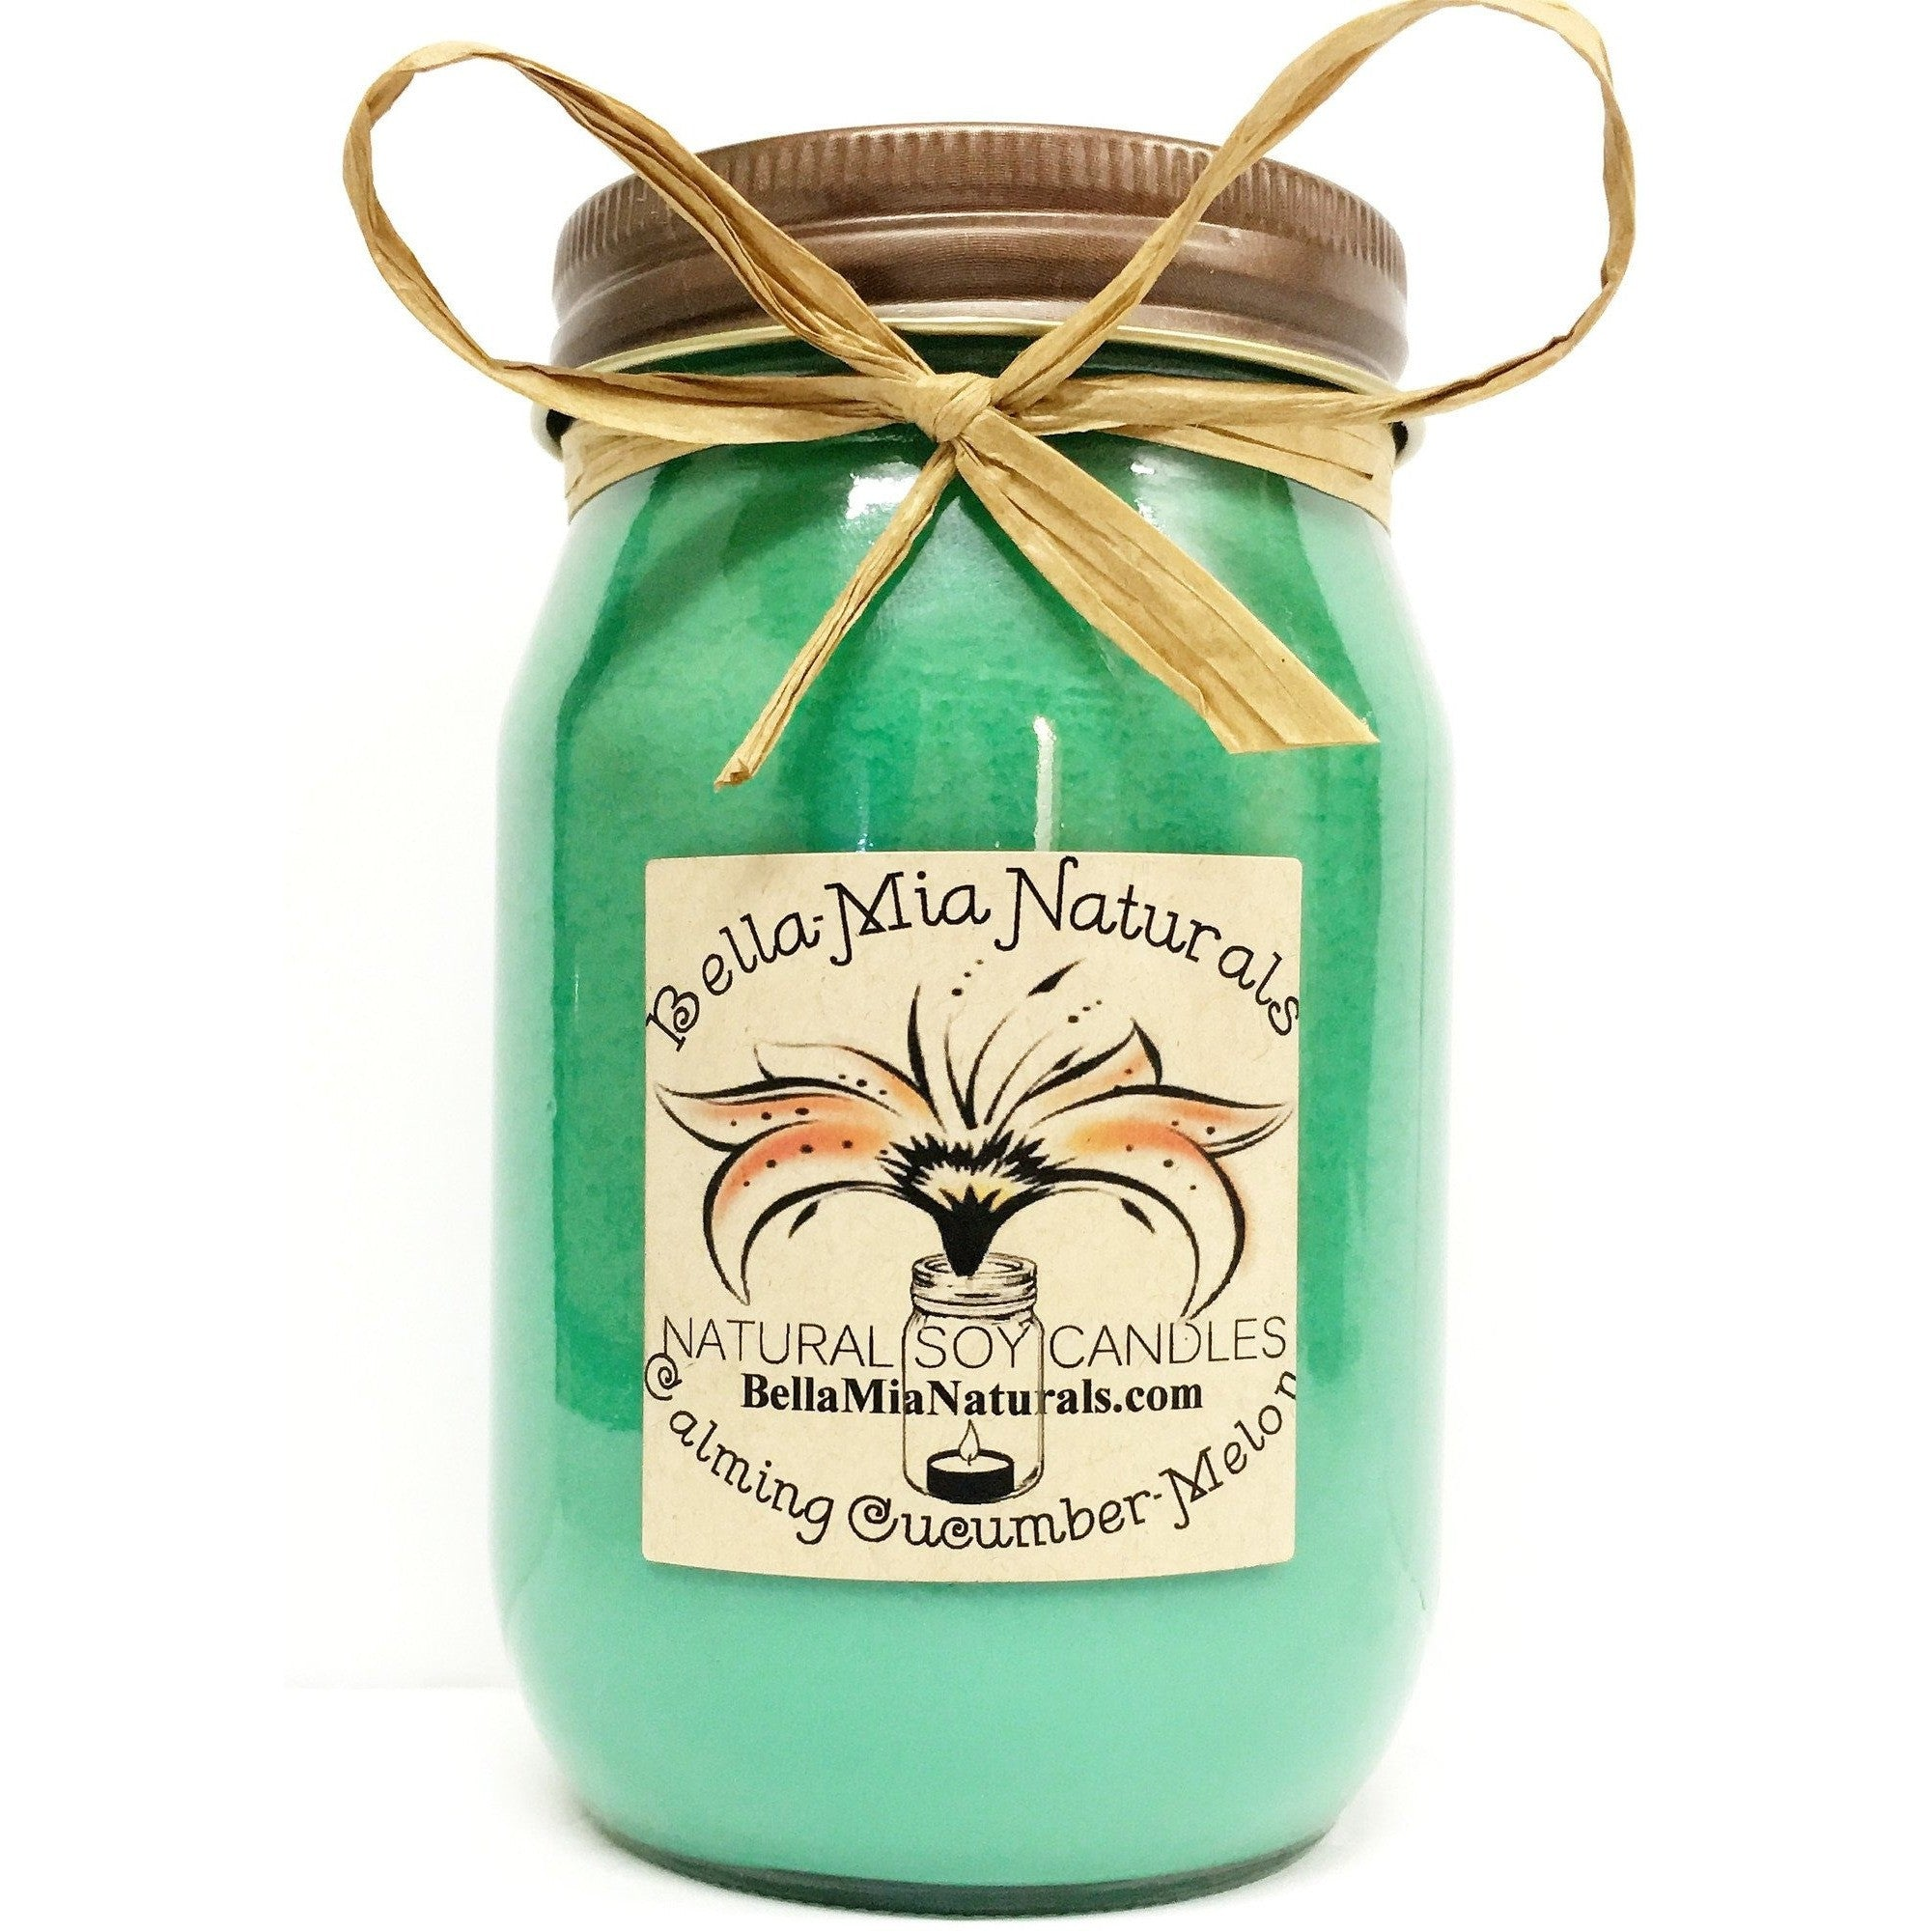 Calming Cucumber-Melon Everyday Natural Soy Candles - Pint - Bella-Mia Naturals All Natural Soy Candles & Lip Balms - 2